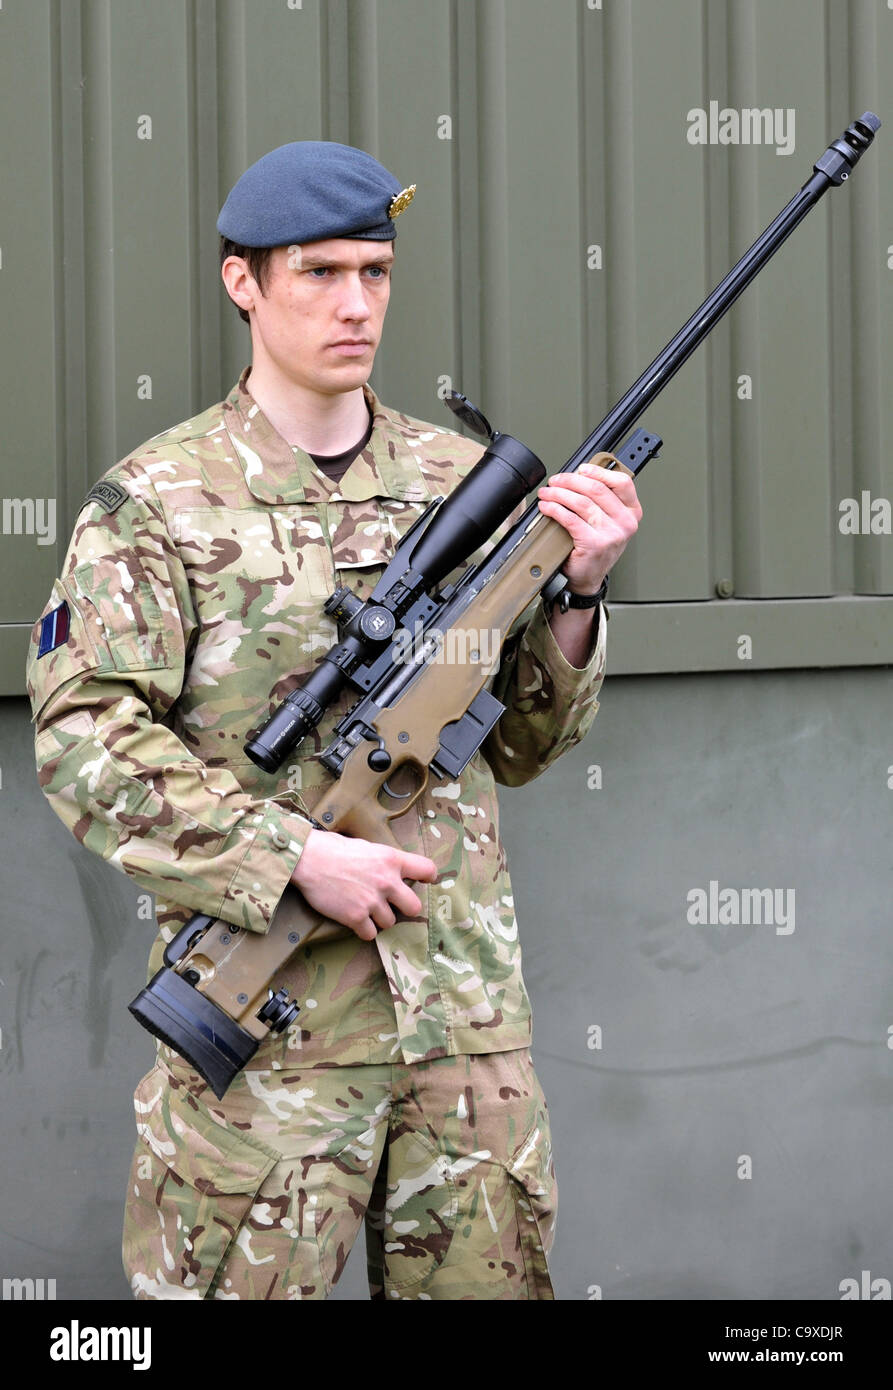 L96 sniper rifle, soldier with L96 sniper rifle - Stock Image